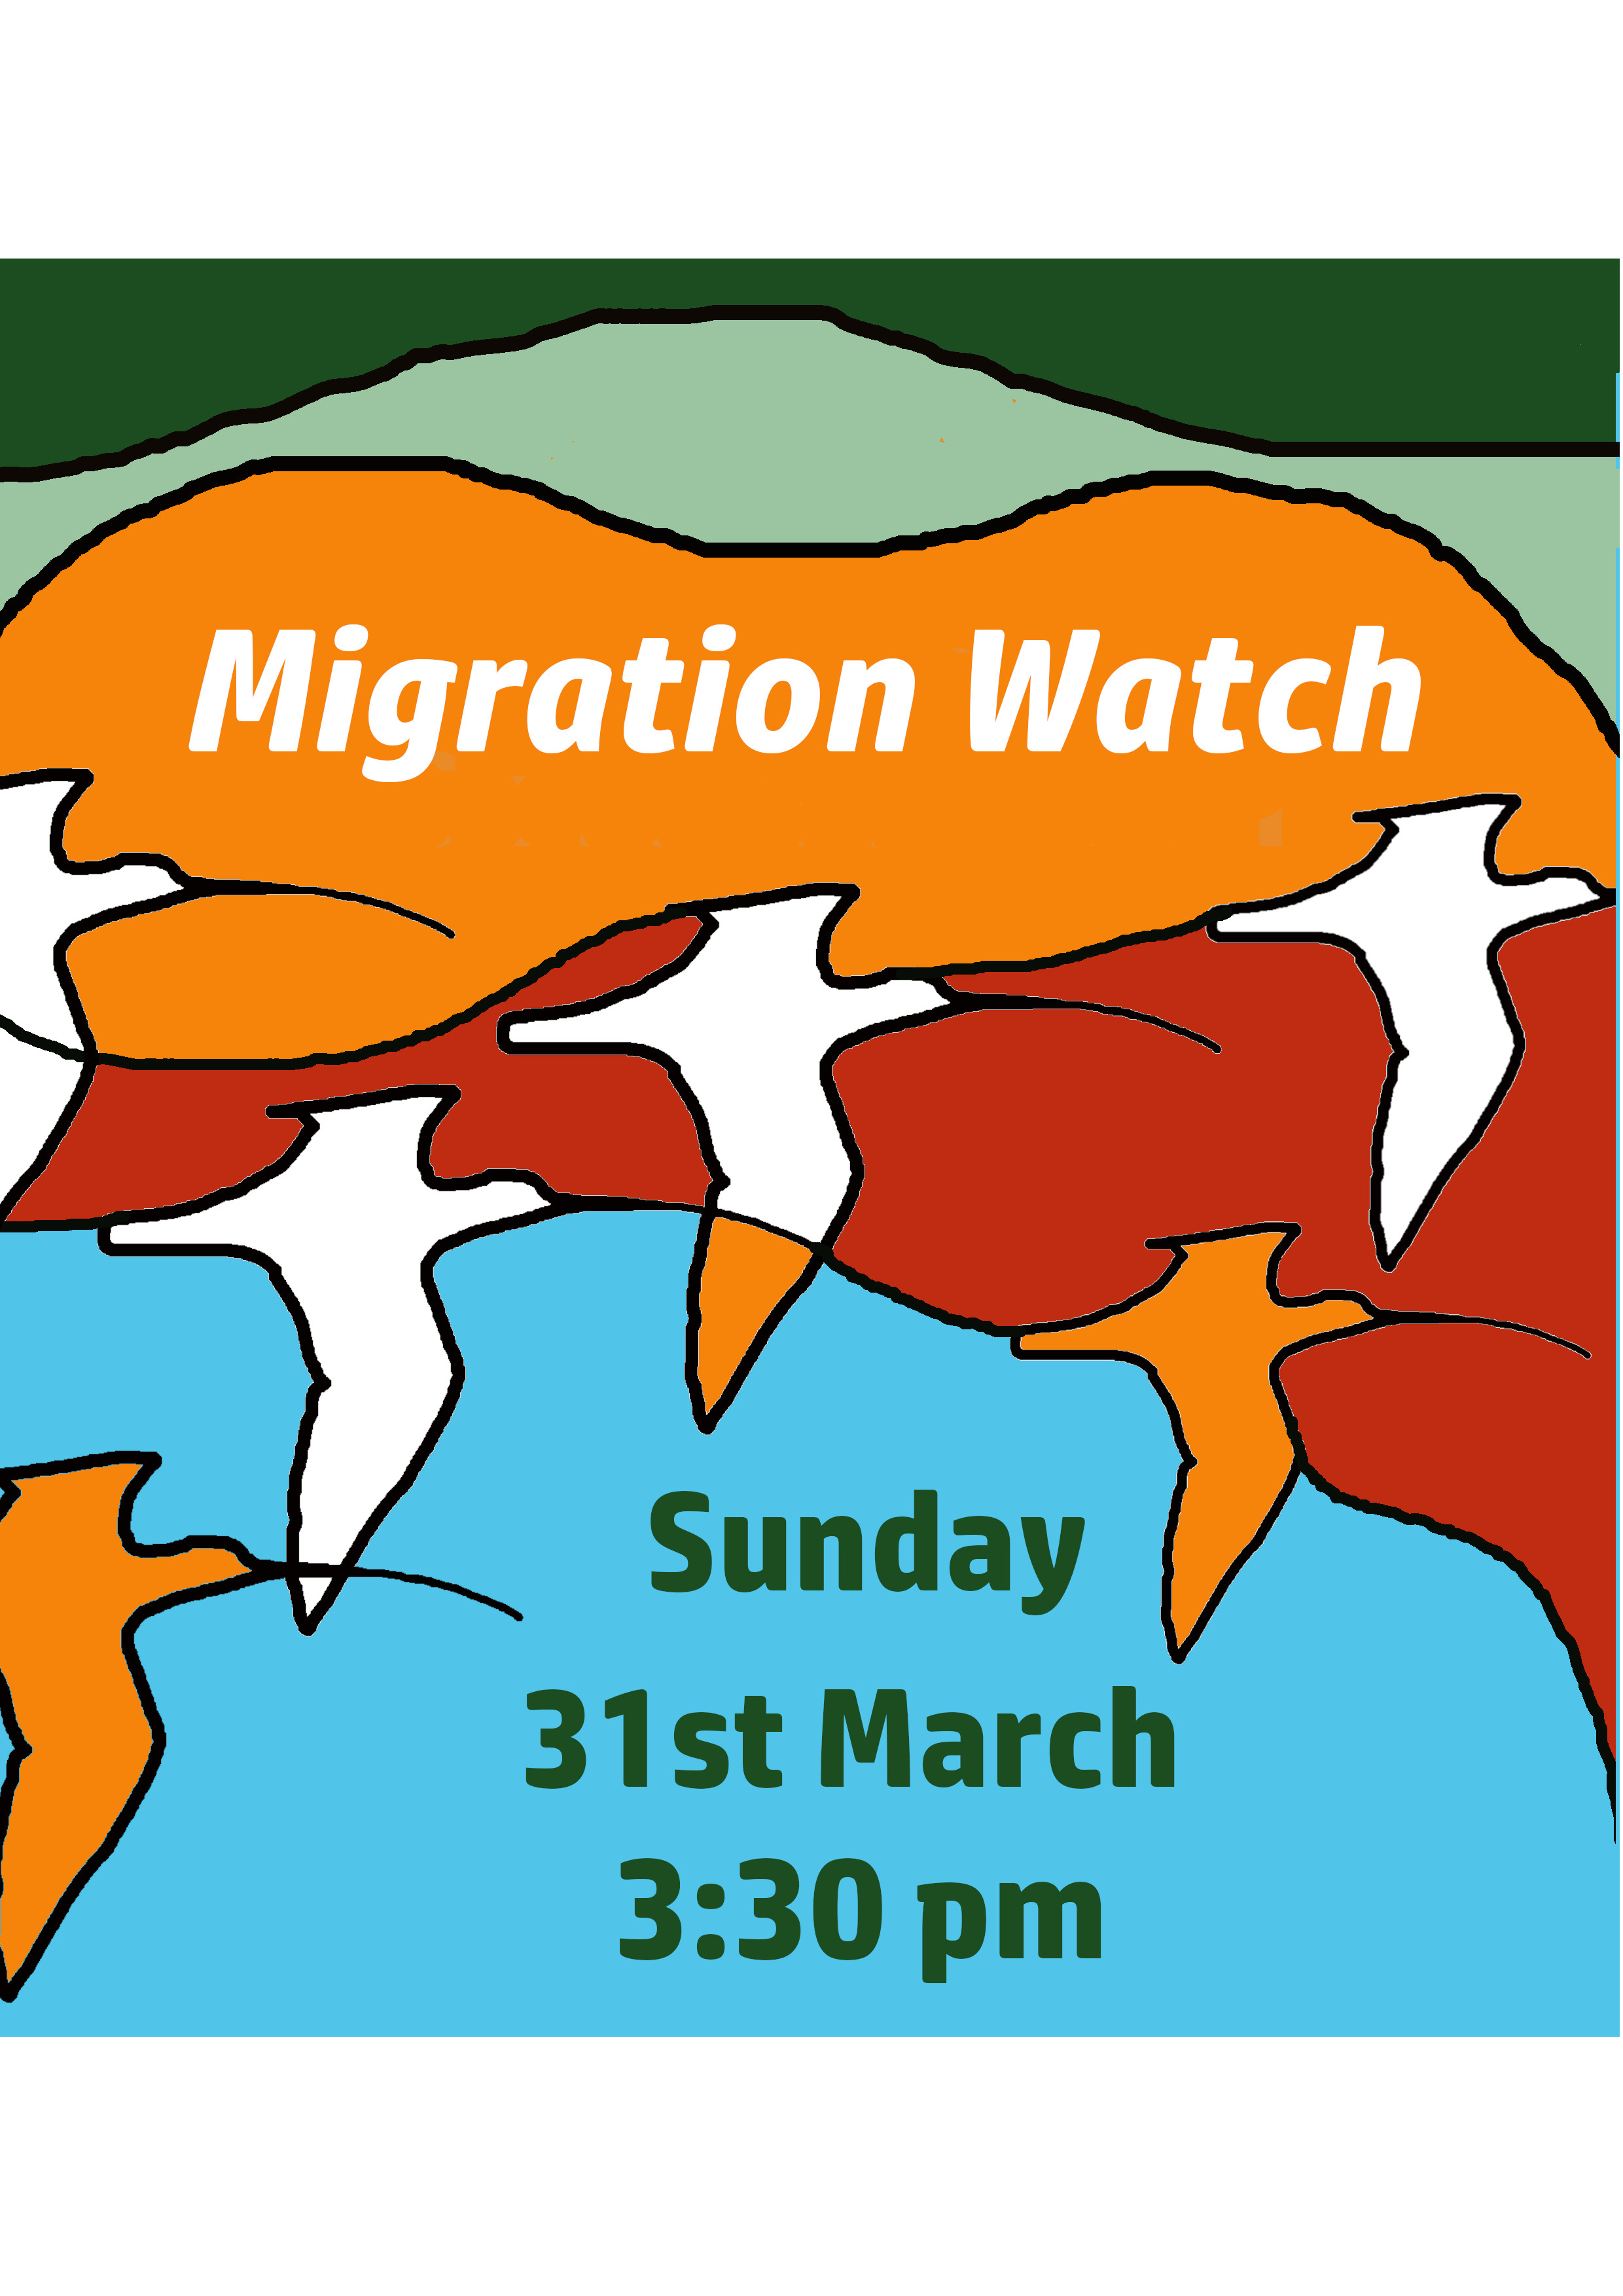 Migration Watch 31st March 2019 3:30 pm   Join local scientists and the Observatory staff for this free family event on beautiful Roebuck Bay for the annual Migration Watch. Hundreds of shorebirds depart, arching their way over the observatory in the evening light to journey to their Arctic.breeding grounds.  Yeeda Burger BBQ at 4:30 pm $10 burger & drink